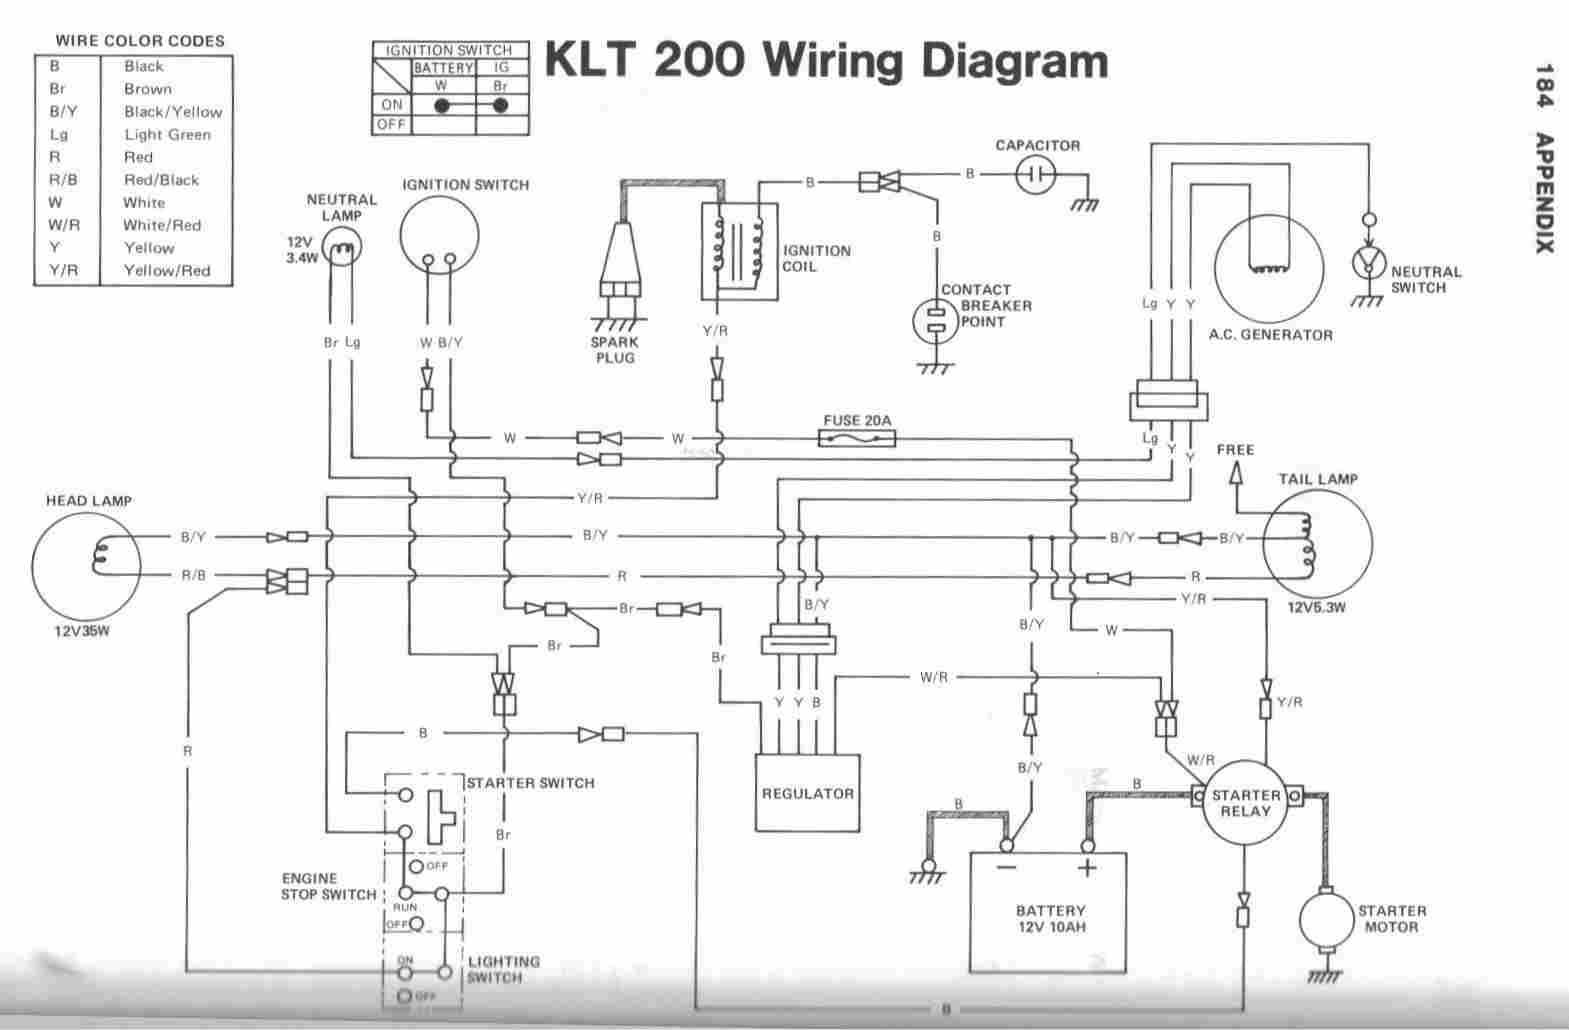 Home Wiring Diagrams : Residential electrical wiring diagrams pdf easy routing